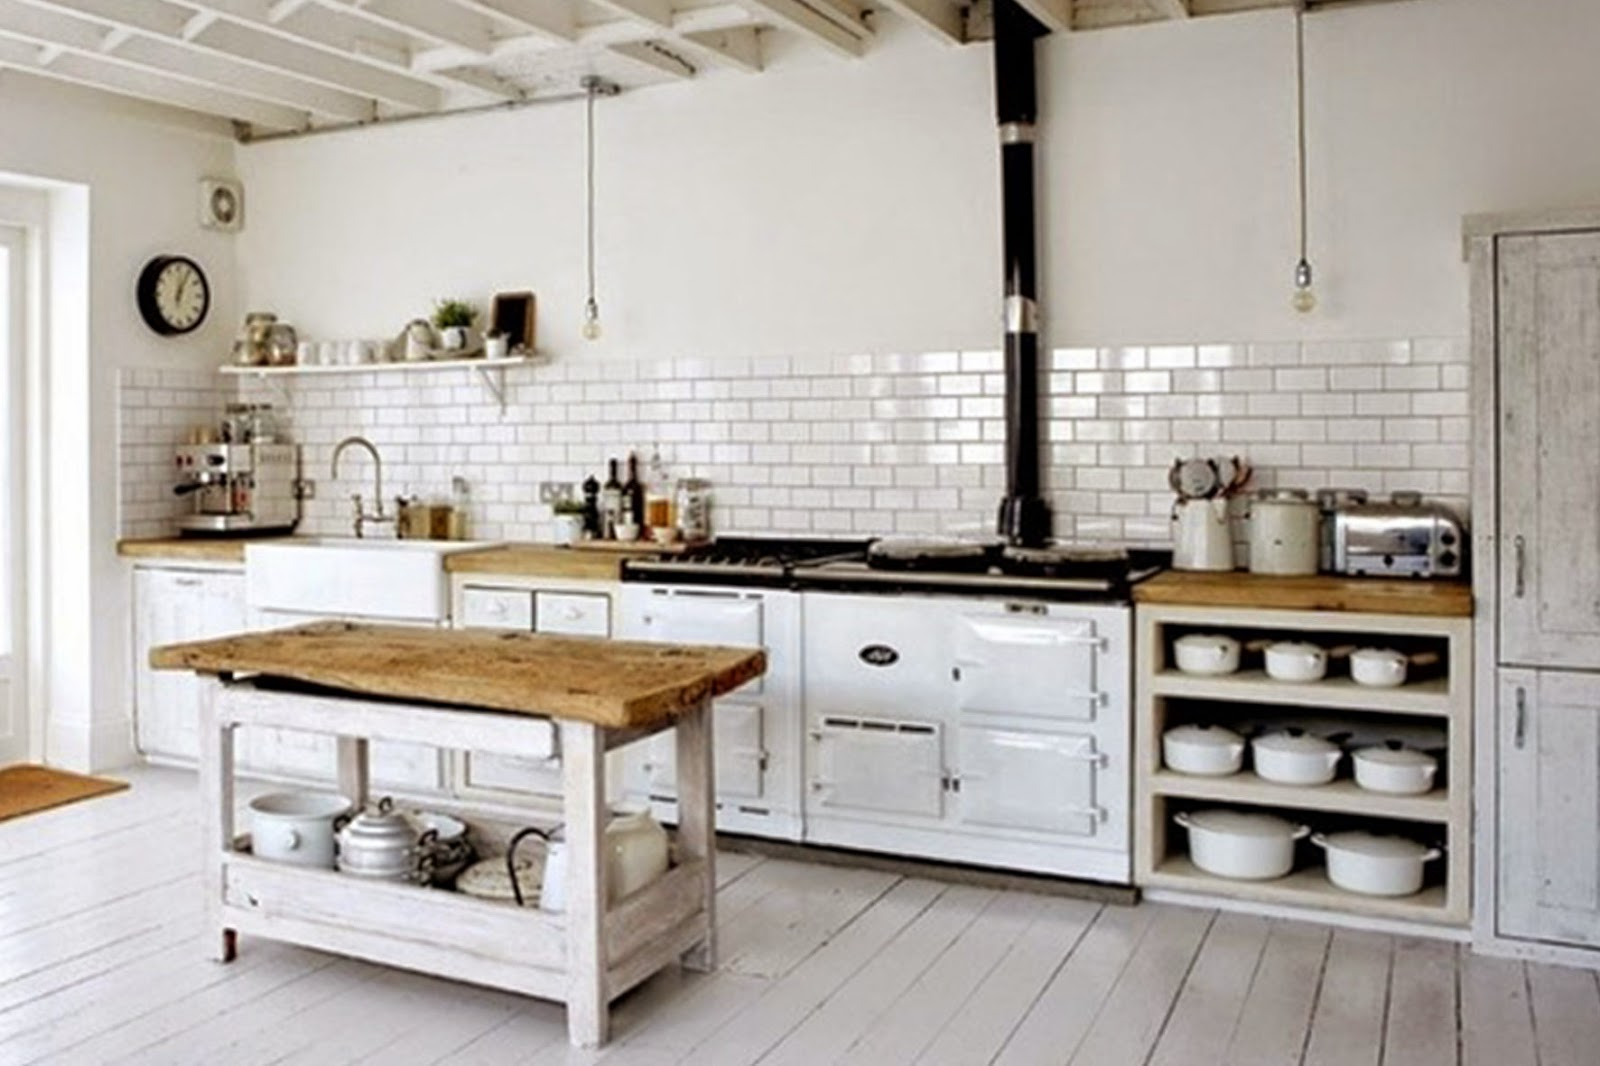 Makeyourhome stile e personalit in cucina - Mobili country bianchi ...